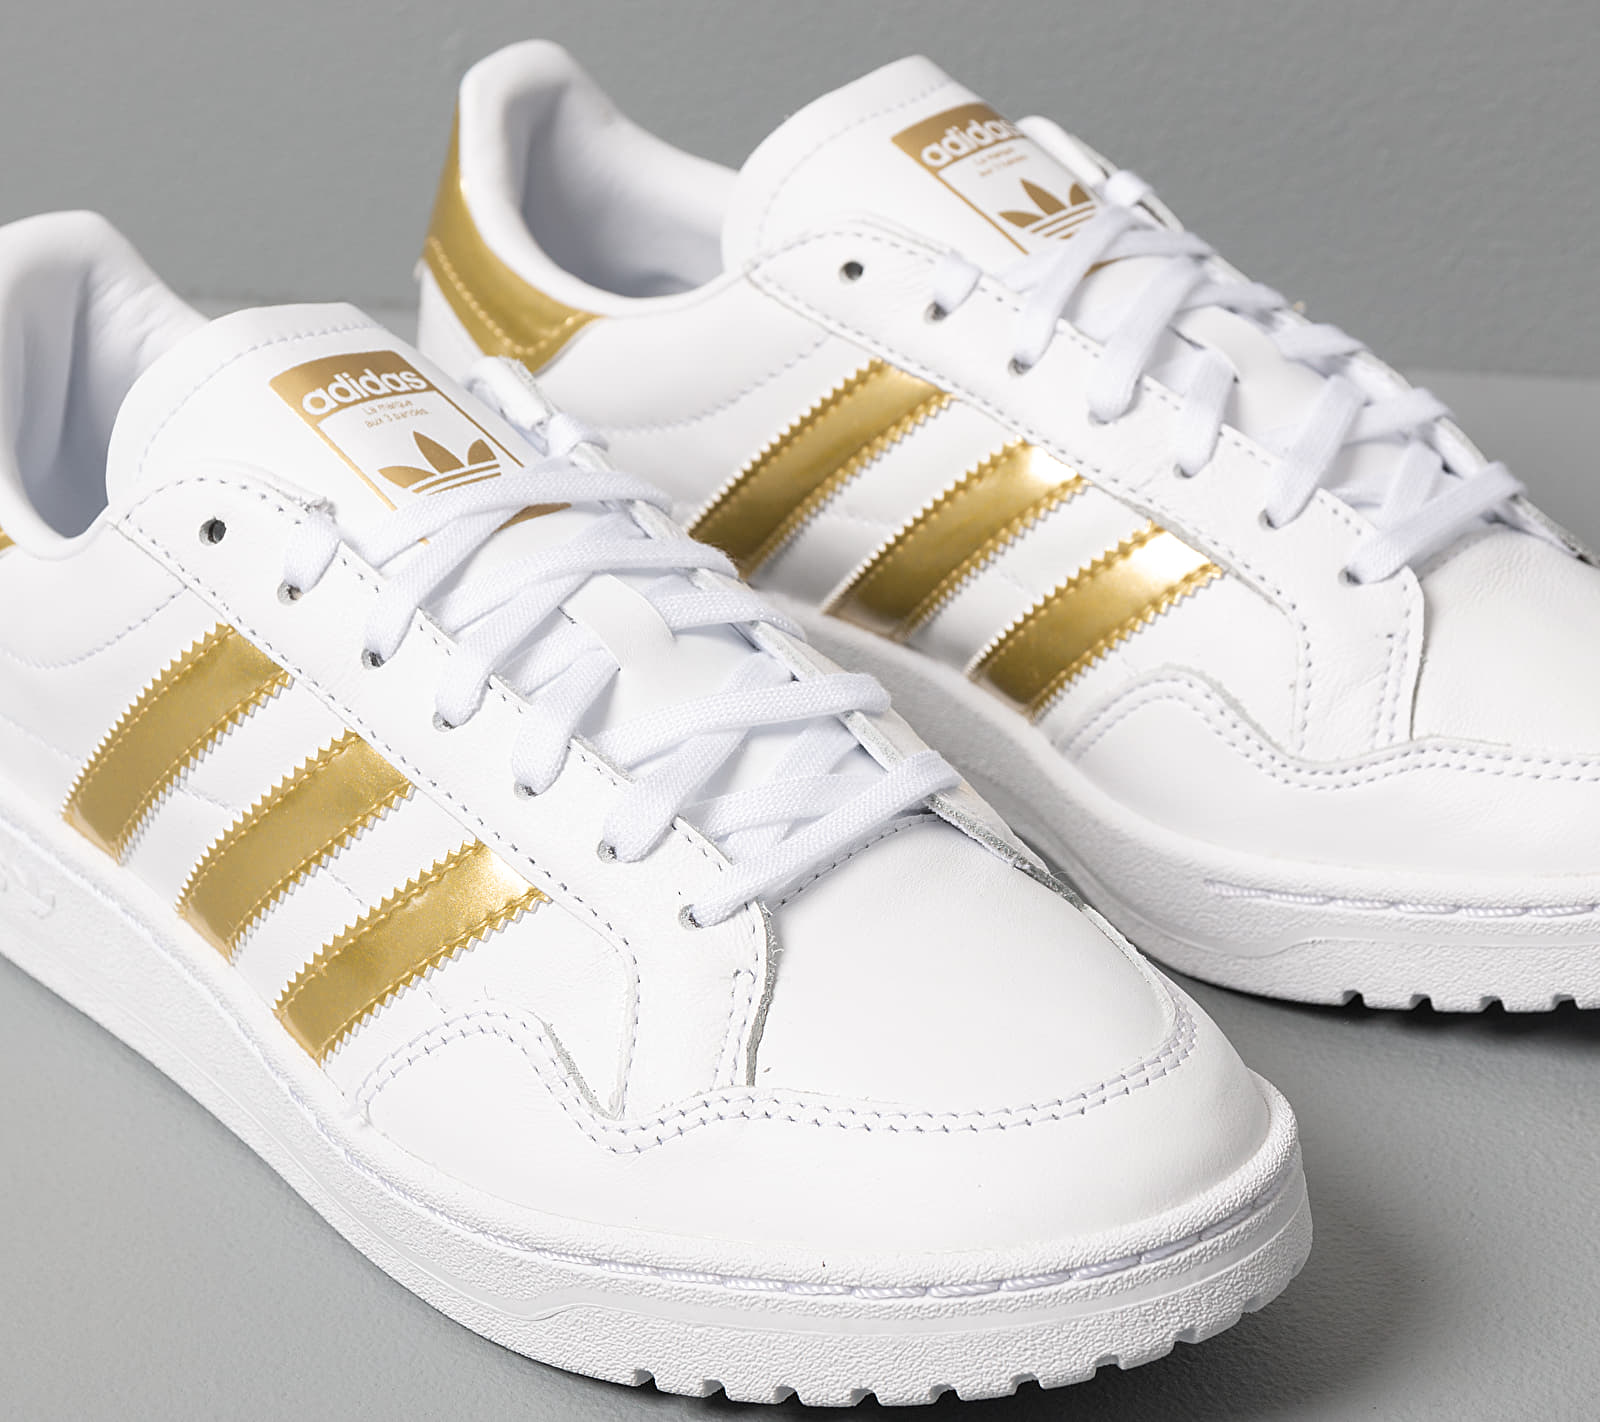 adidas Team Court W Ftw White/ Gold Metalic/ Ftw White EUR 40 2/3